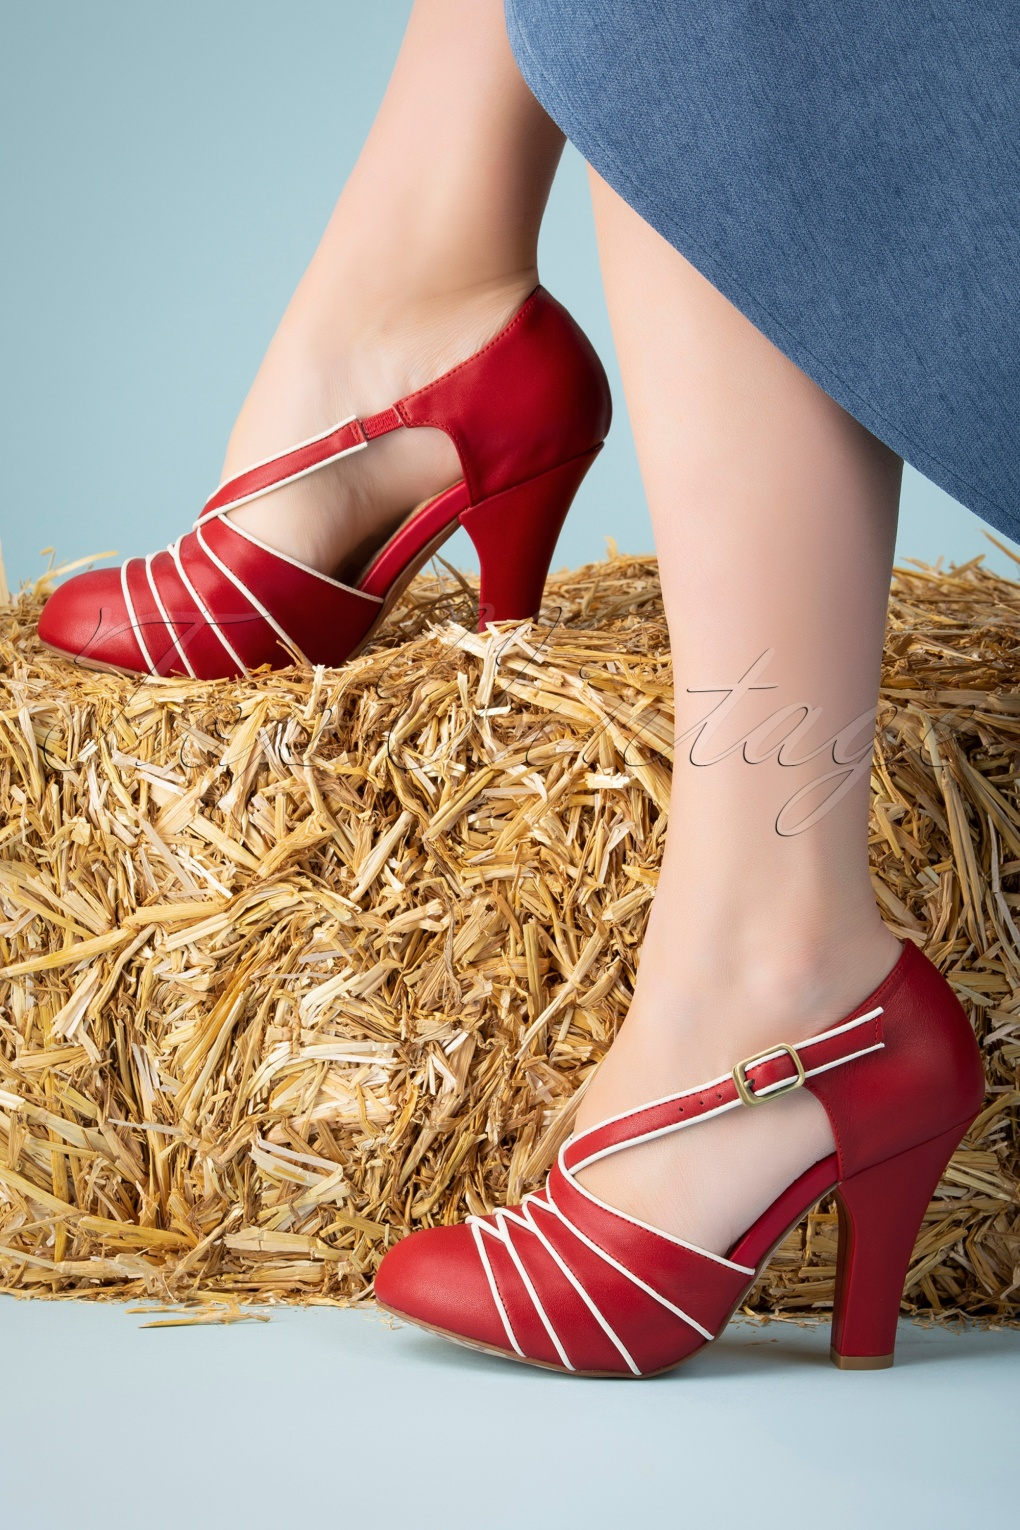 Vintage Shoes, Vintage Style Shoes 50s June Carnival Party Pumps in Red and Cream £51.20 AT vintagedancer.com